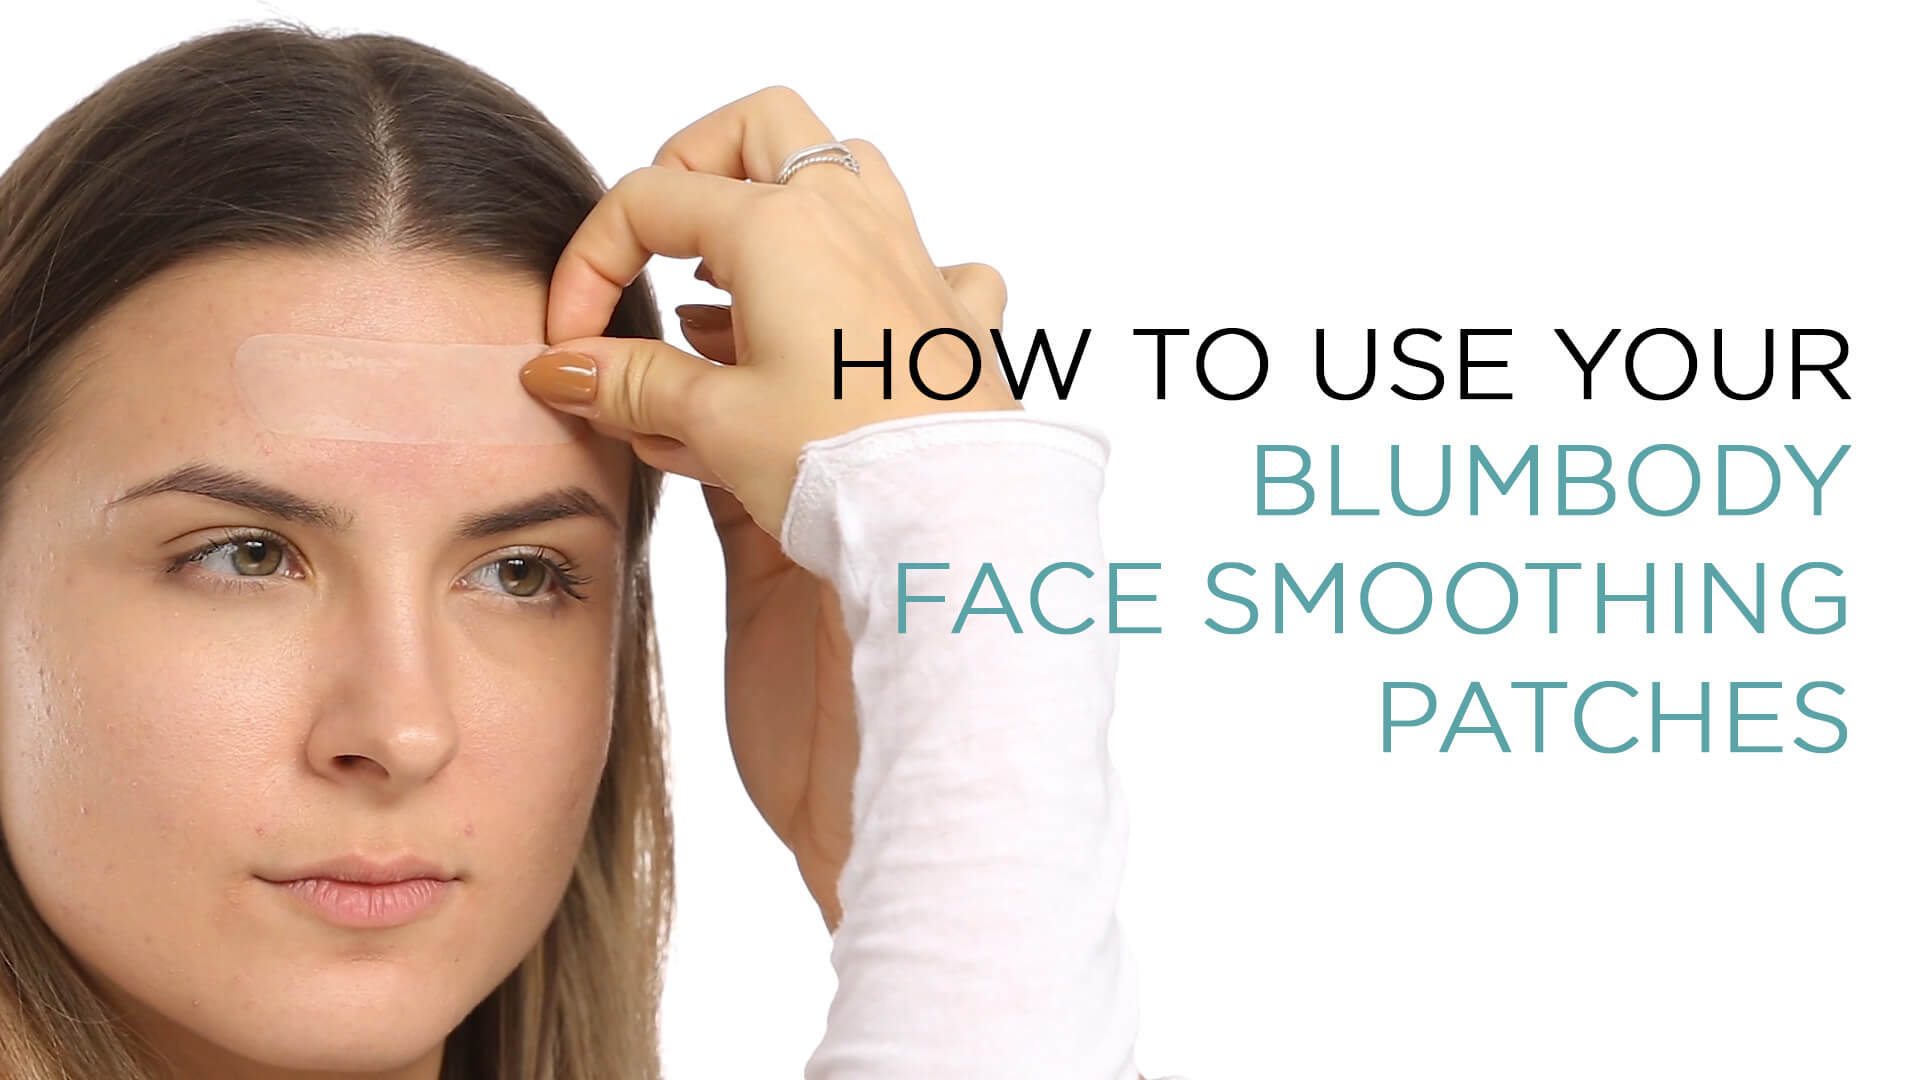 Blumbody Wrinkle Patches for Face - Facial Anti Wrinkle Smoothing Treatment for Smoothing Eye, Mouth or Frown Wrinkles - 165 Reusable Face Patches